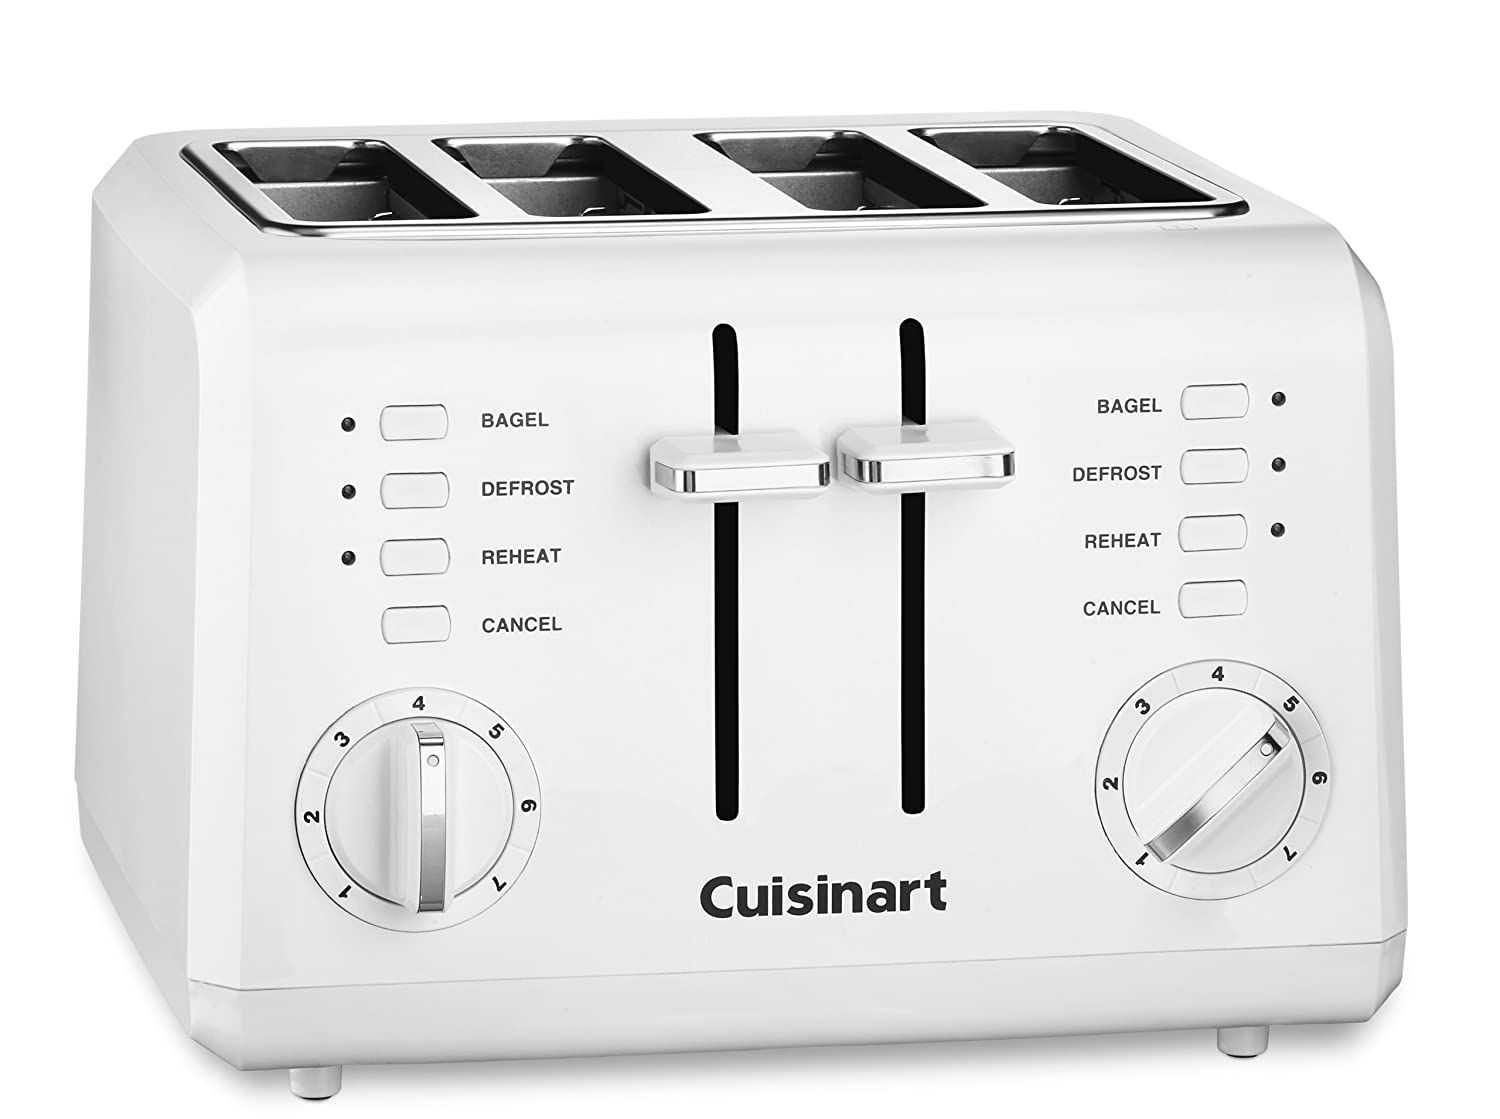 Amazon Cuisinart CPT 142 pact 4 Slice Toaster Kitchen